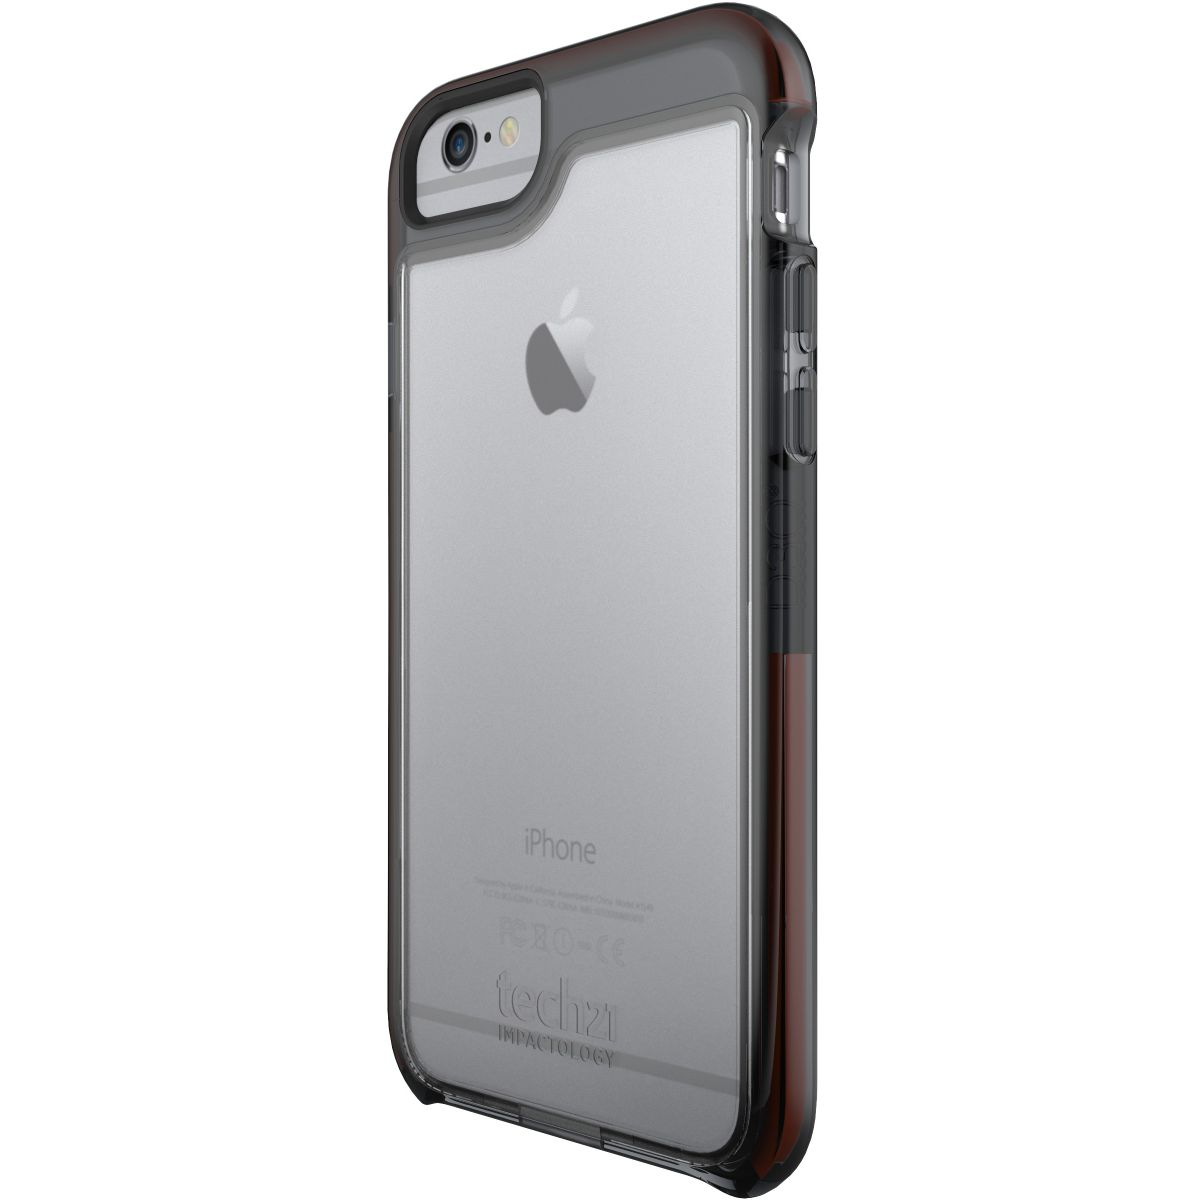 Coque TECH 21 iPhone 6/6s smokey anti-choc